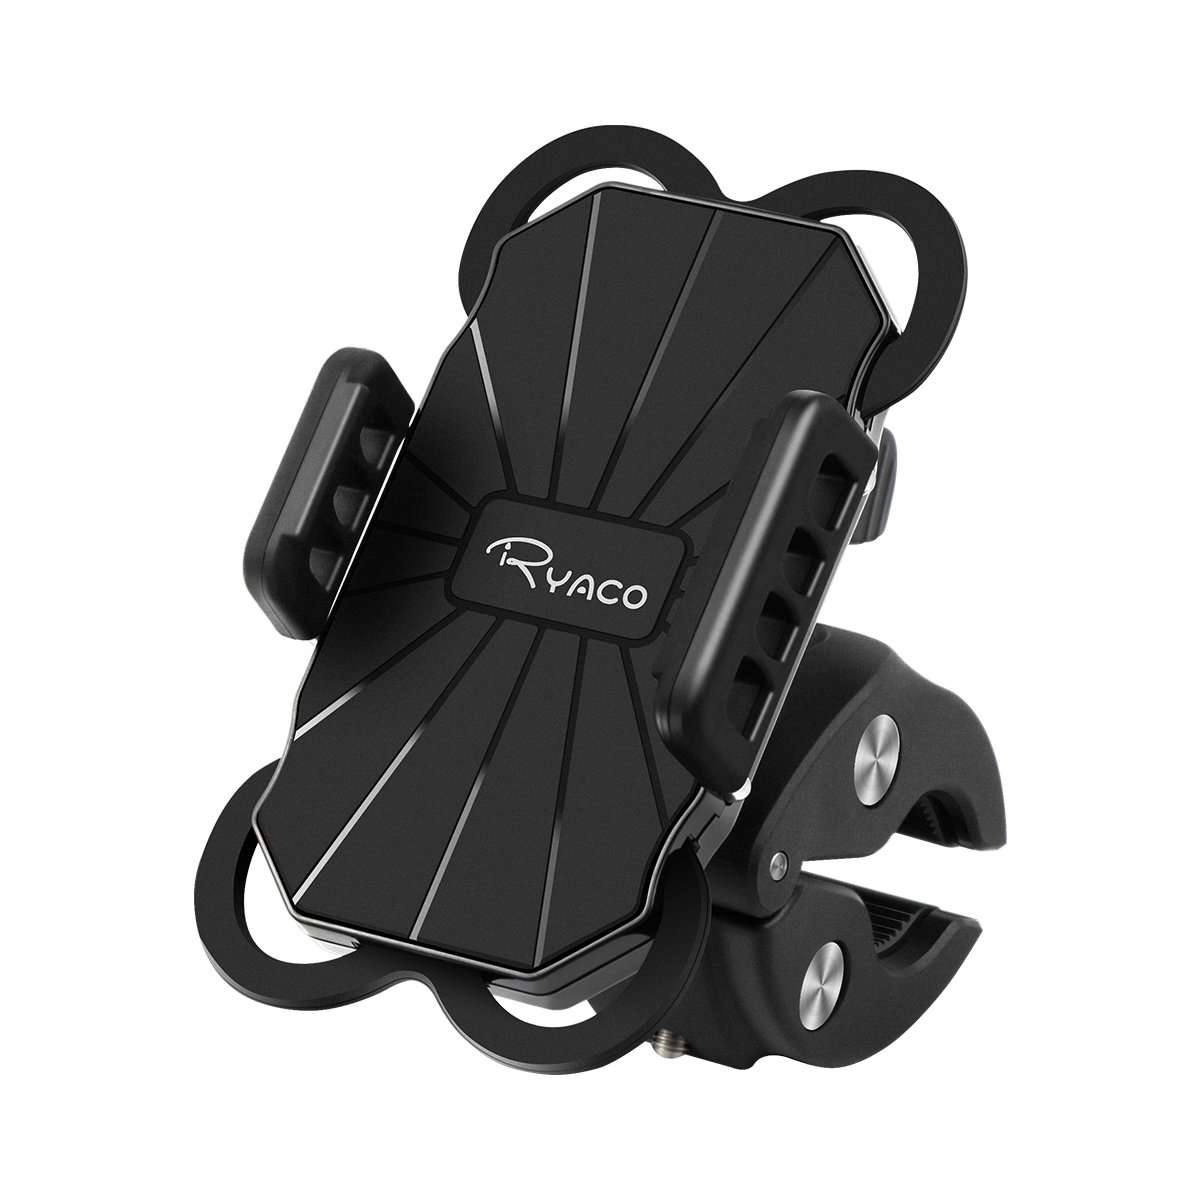 Ryaco Motorcycle & Bike Phone Mount, Universal Motorcycle Phone Holder, Motorcycle Handlebar Mount Bicycle Holder Fits iPhone X, 8/8 Plus, 7, 6/6s Plus, Galaxy S9/S9 Plus, S8/S8 Plus, 360° Rotation 97BPM-RSU-1BR